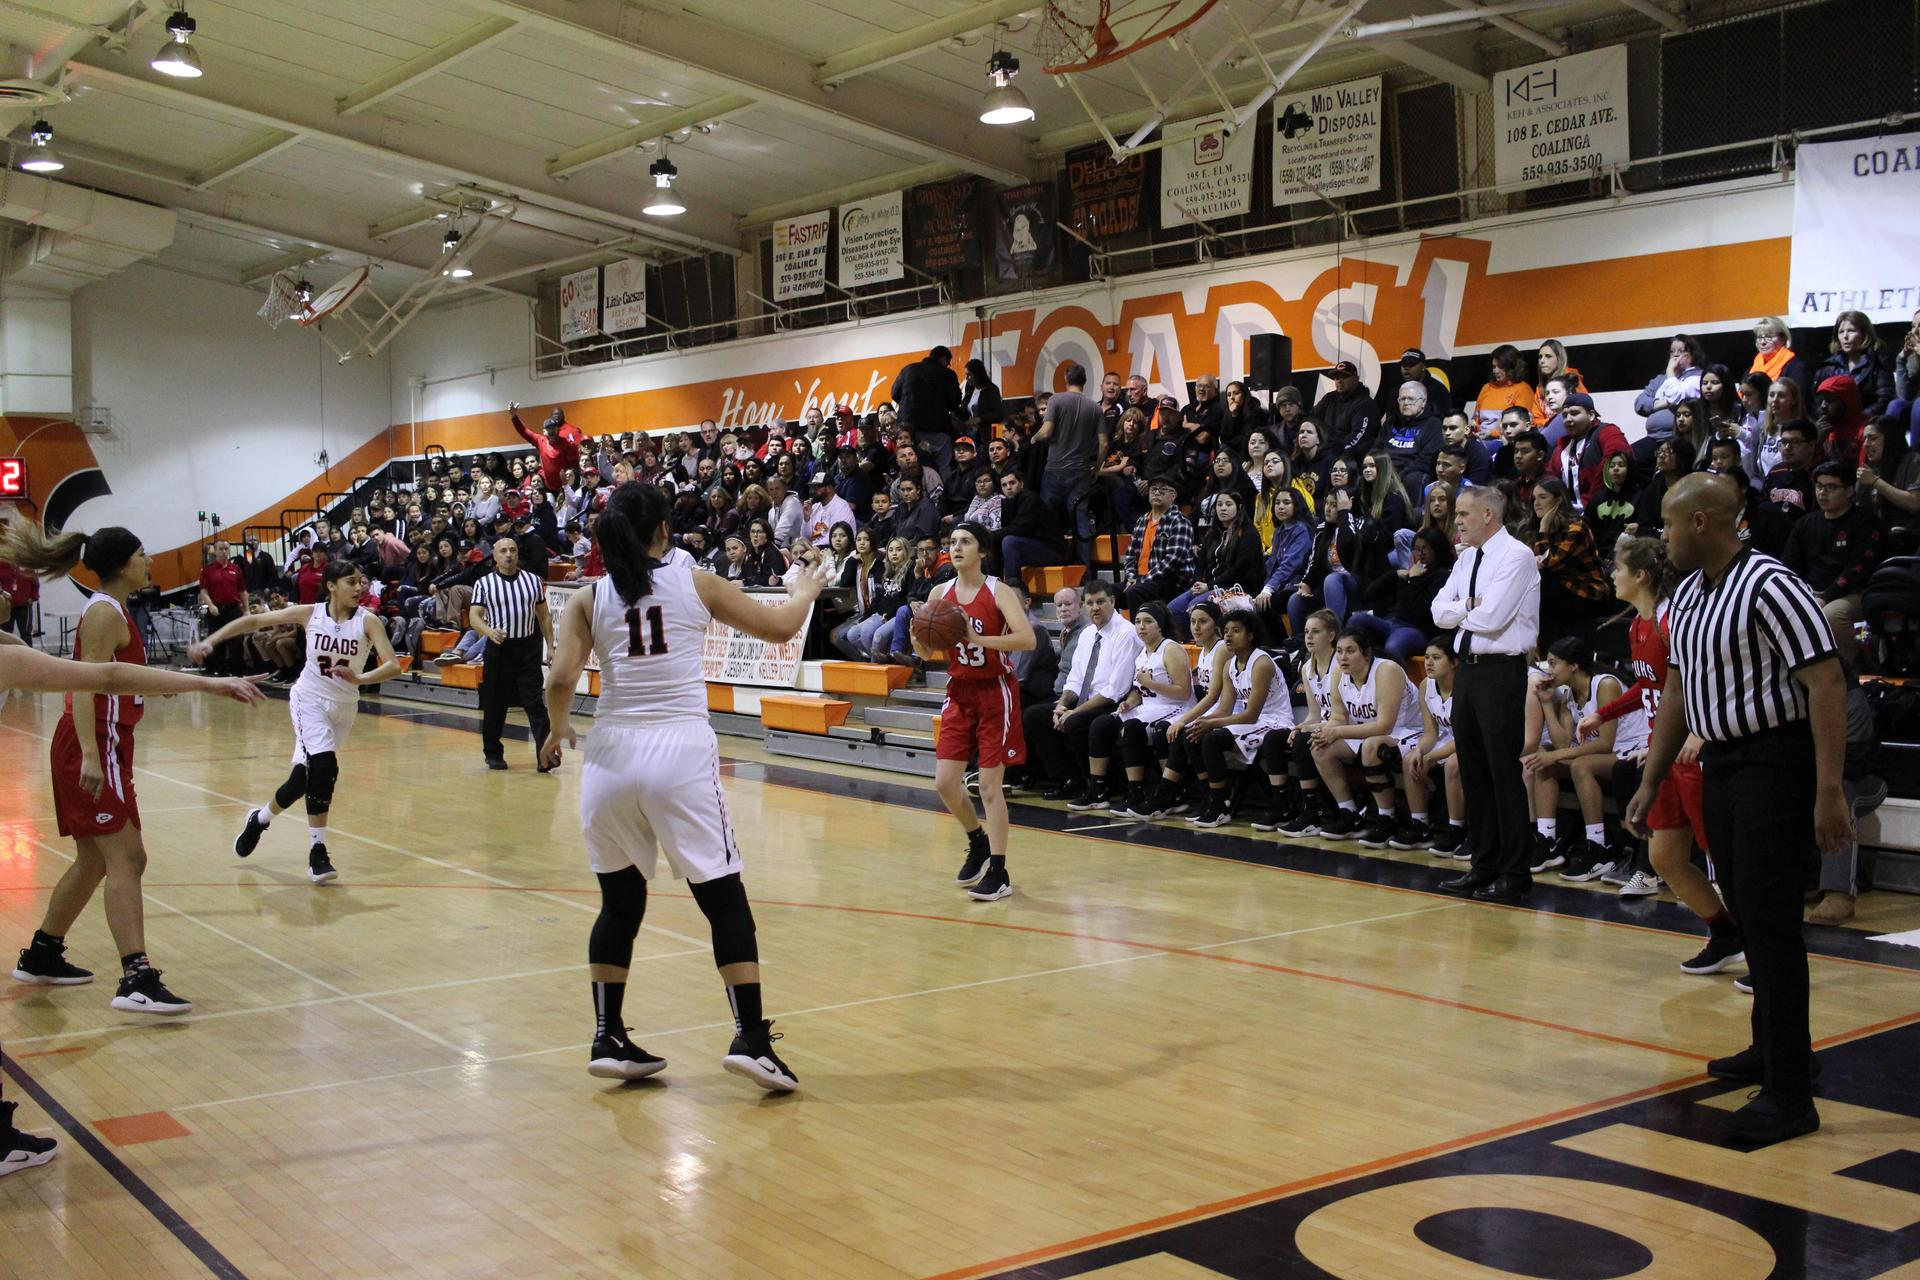 Varsity Girls playing basketball against Coalinga